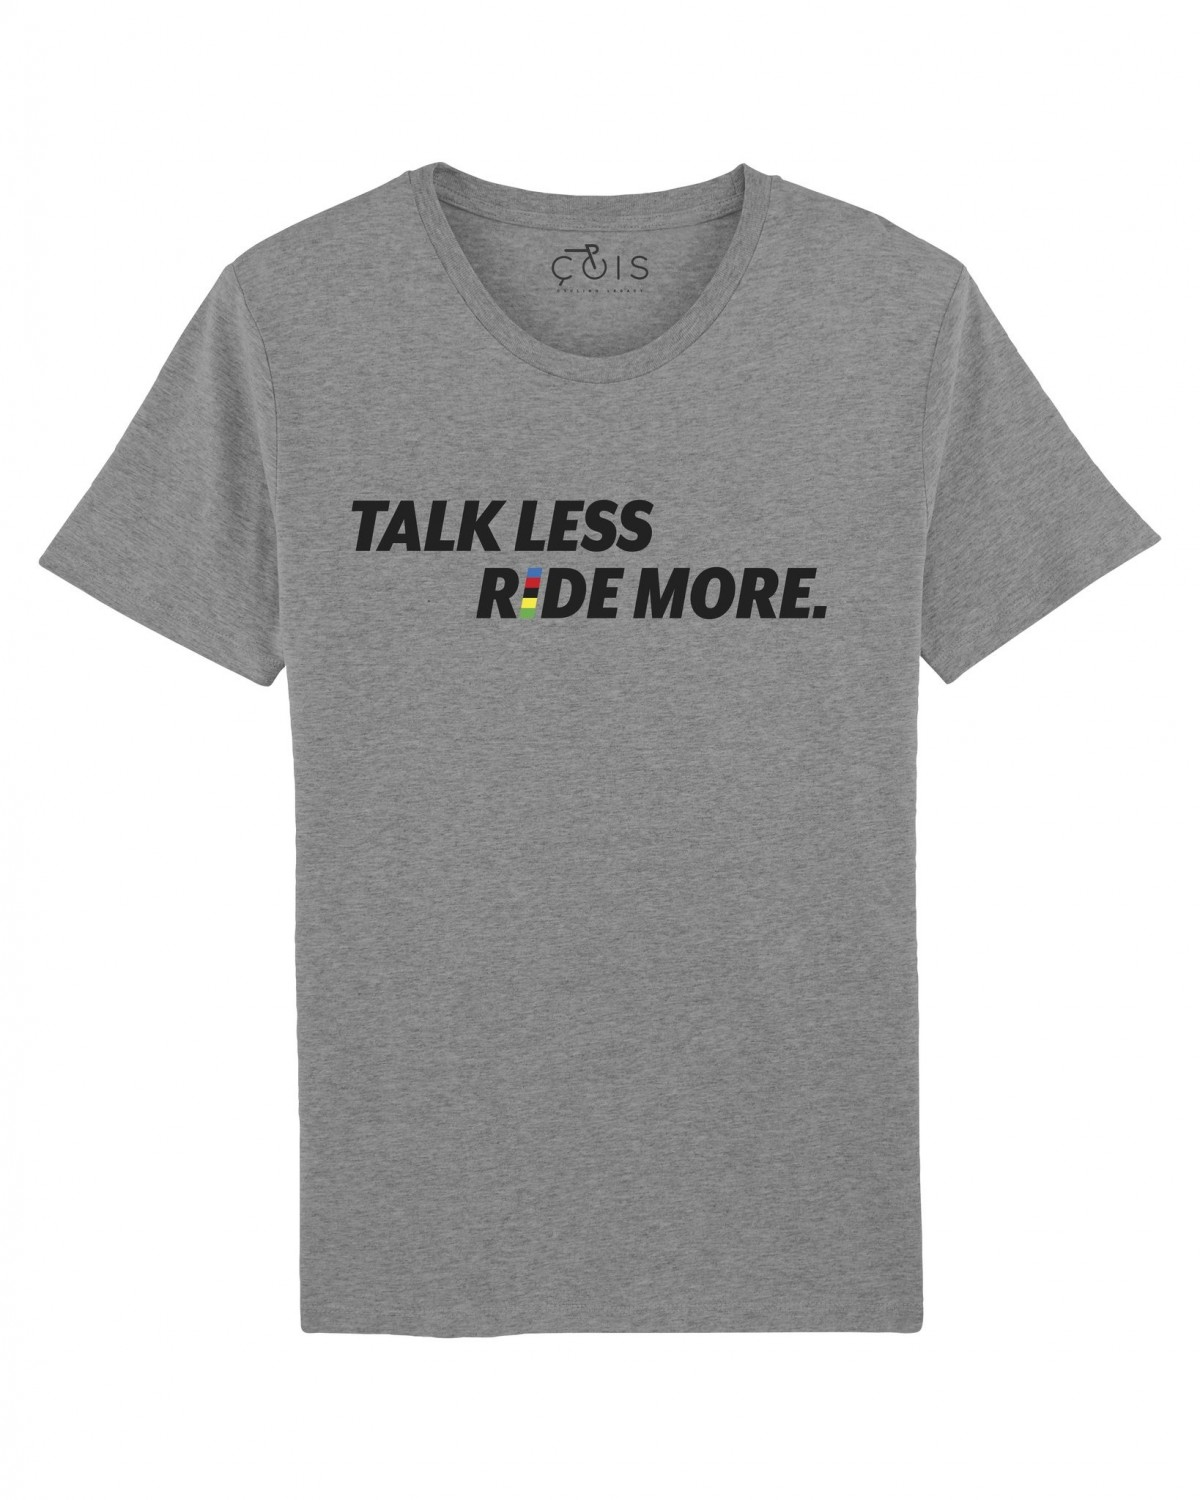 T-Shirt Talk Less Ride More Grau Cois Cycling